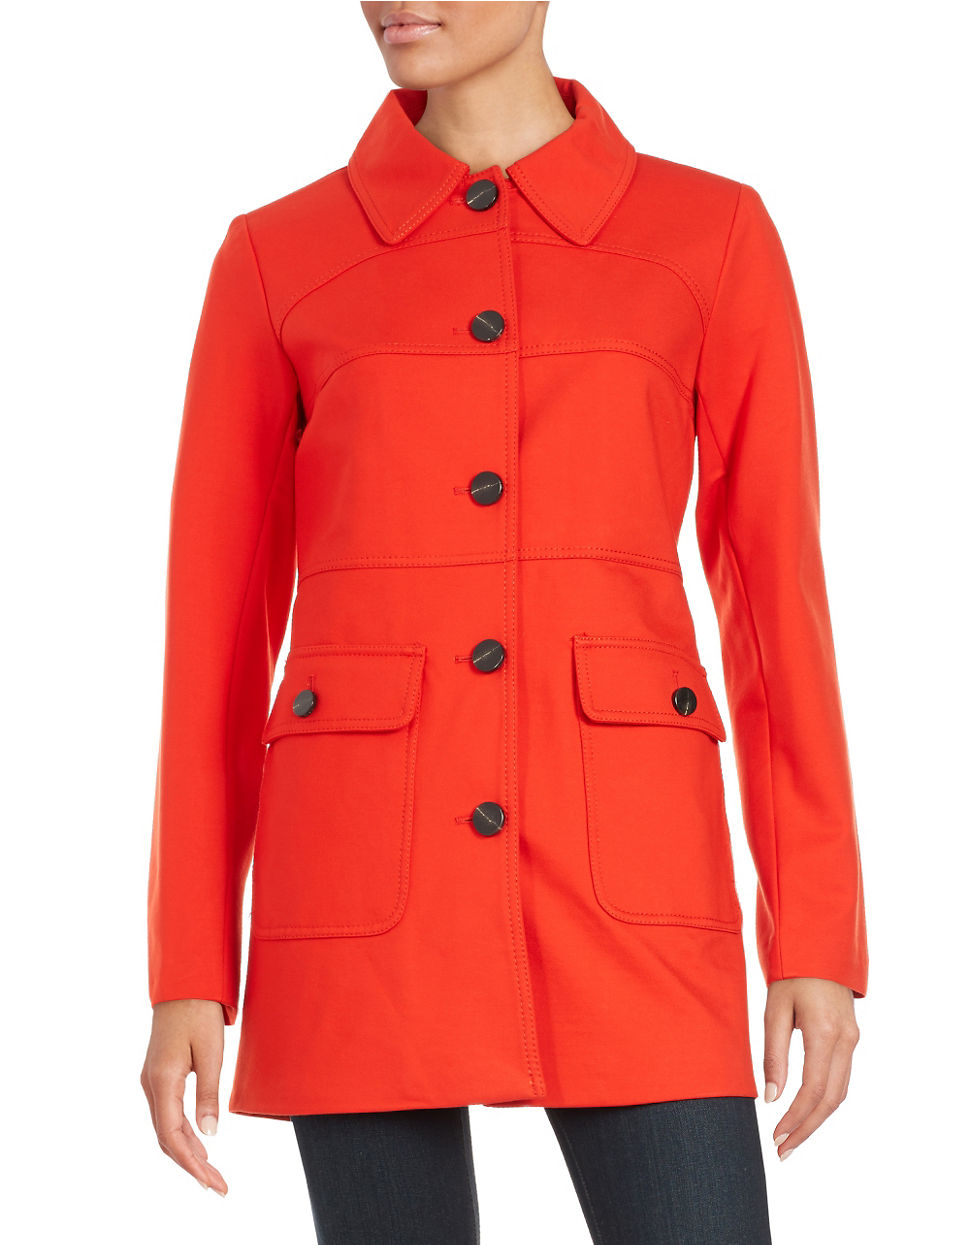 Vince camuto Button-down Car Coat in Red | Lyst